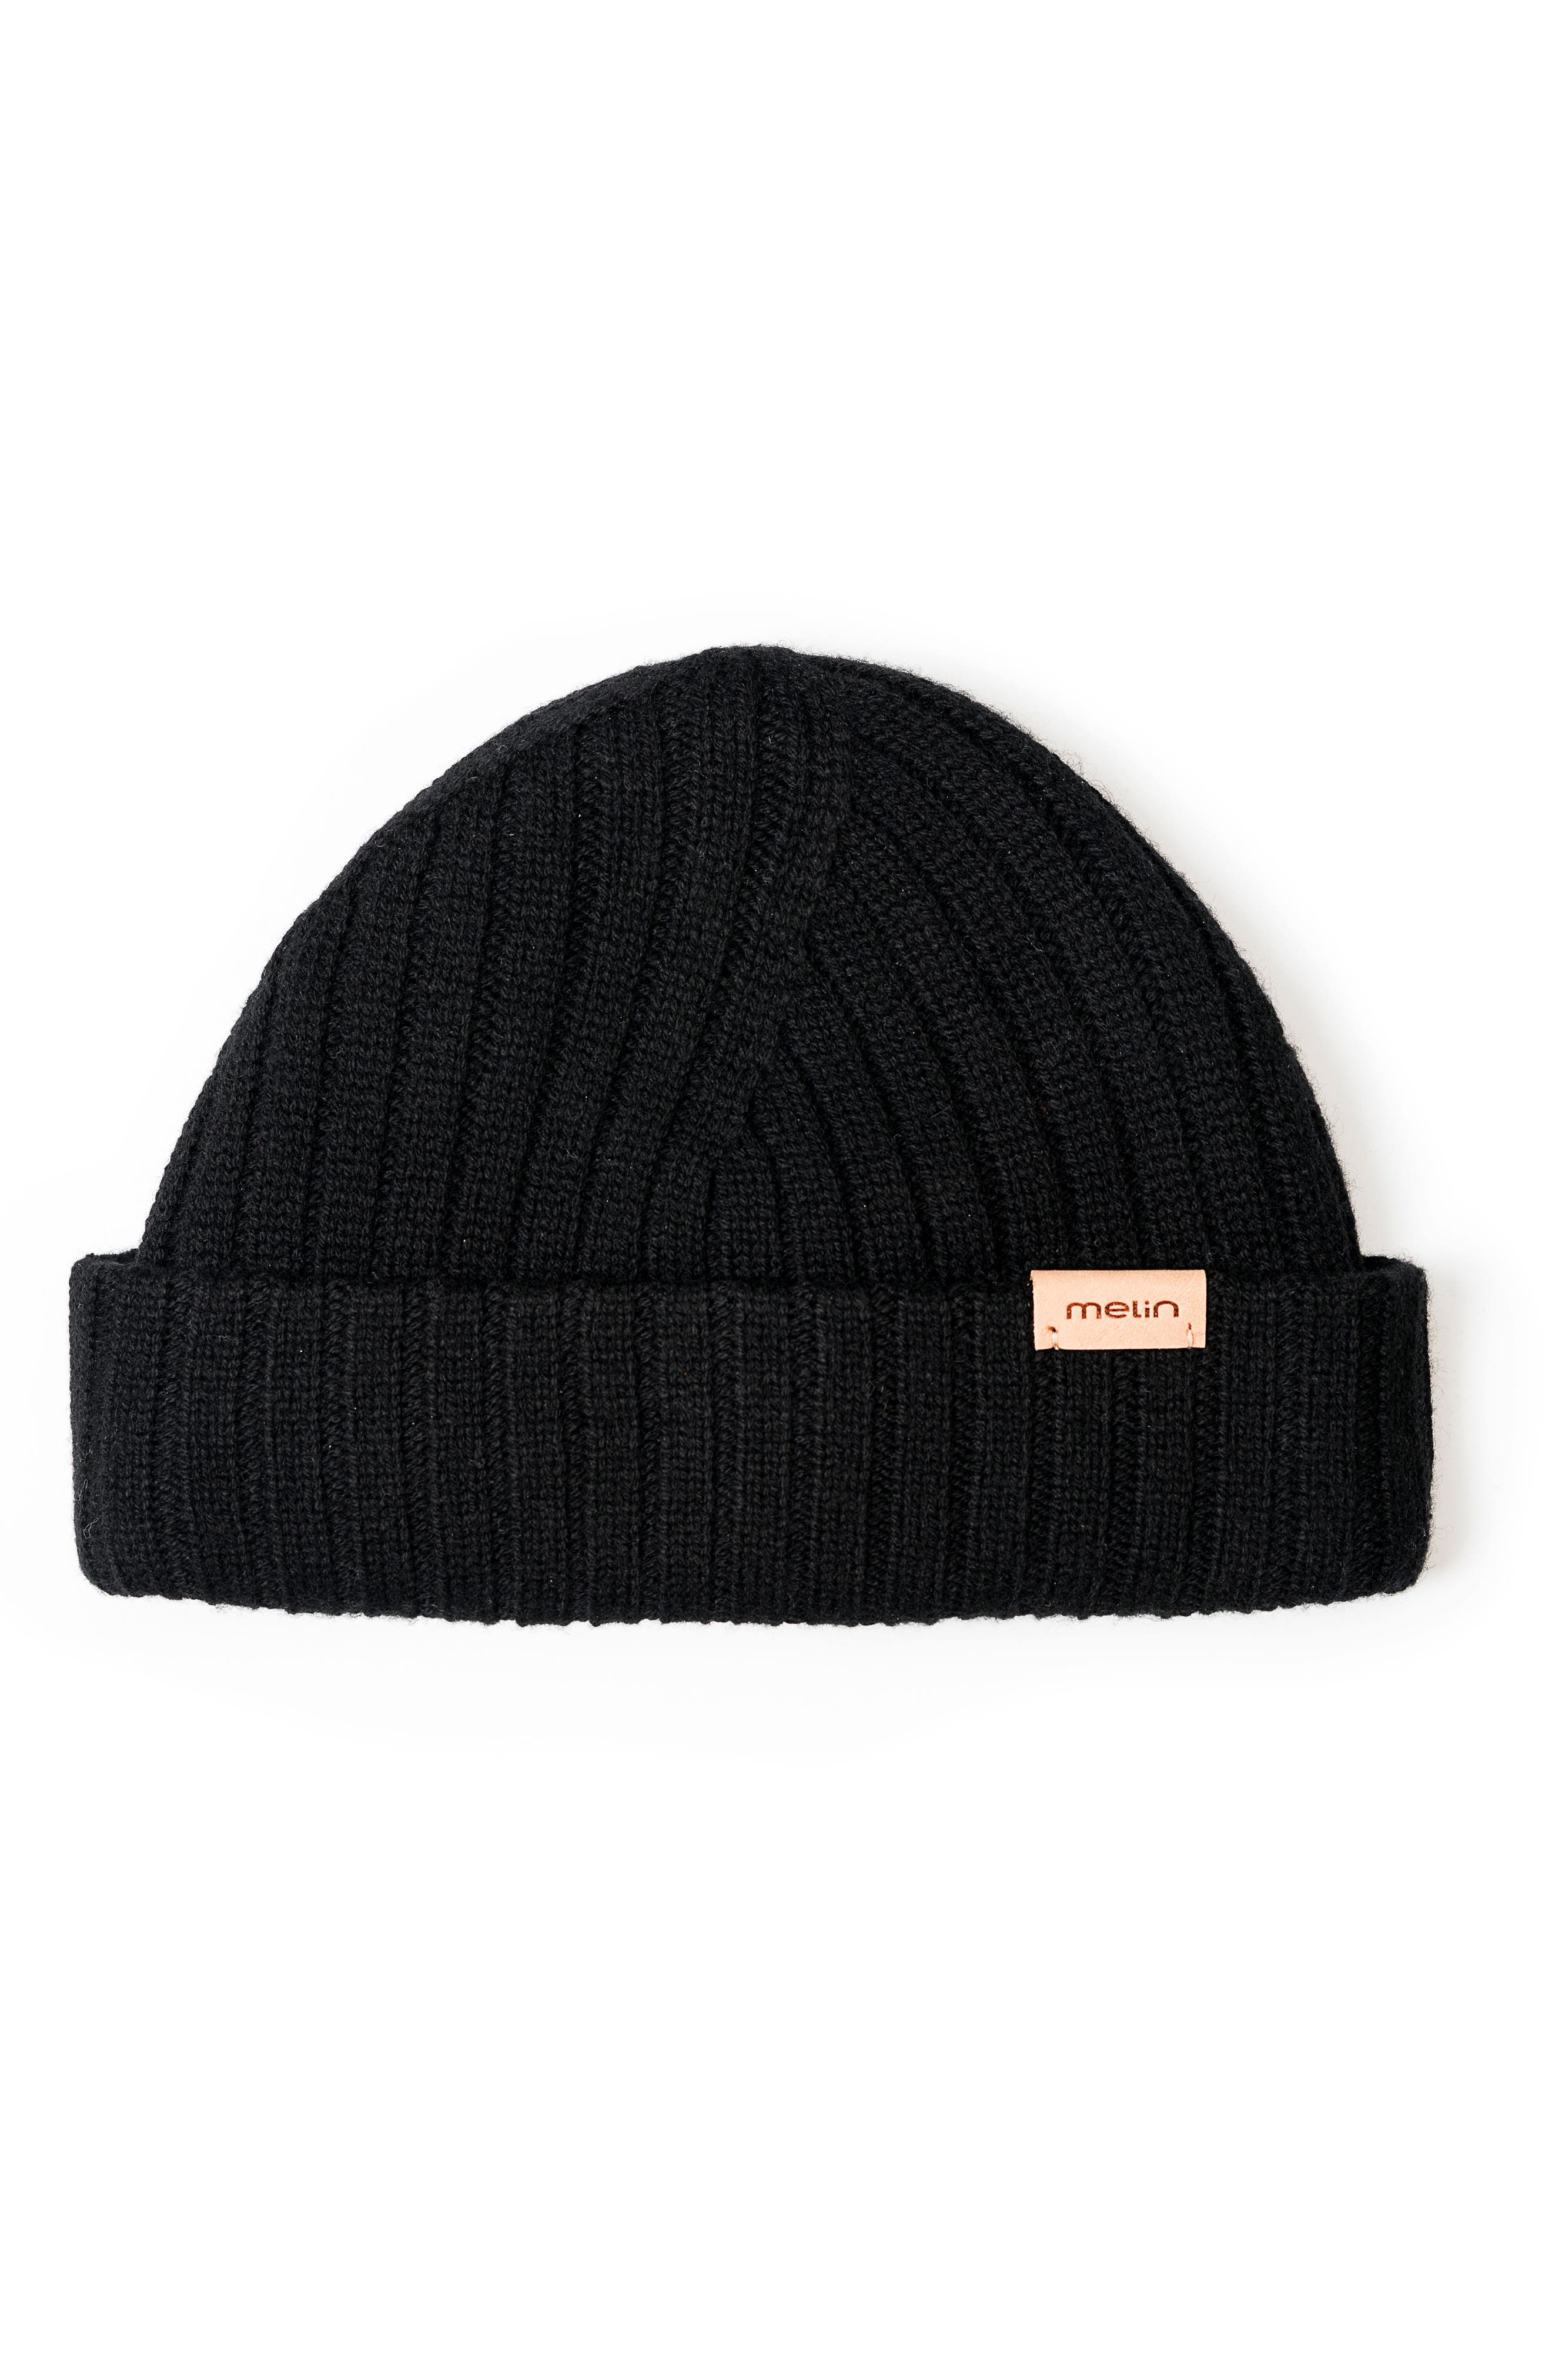 All Day Beanie,                         Main,                         color, BLACK